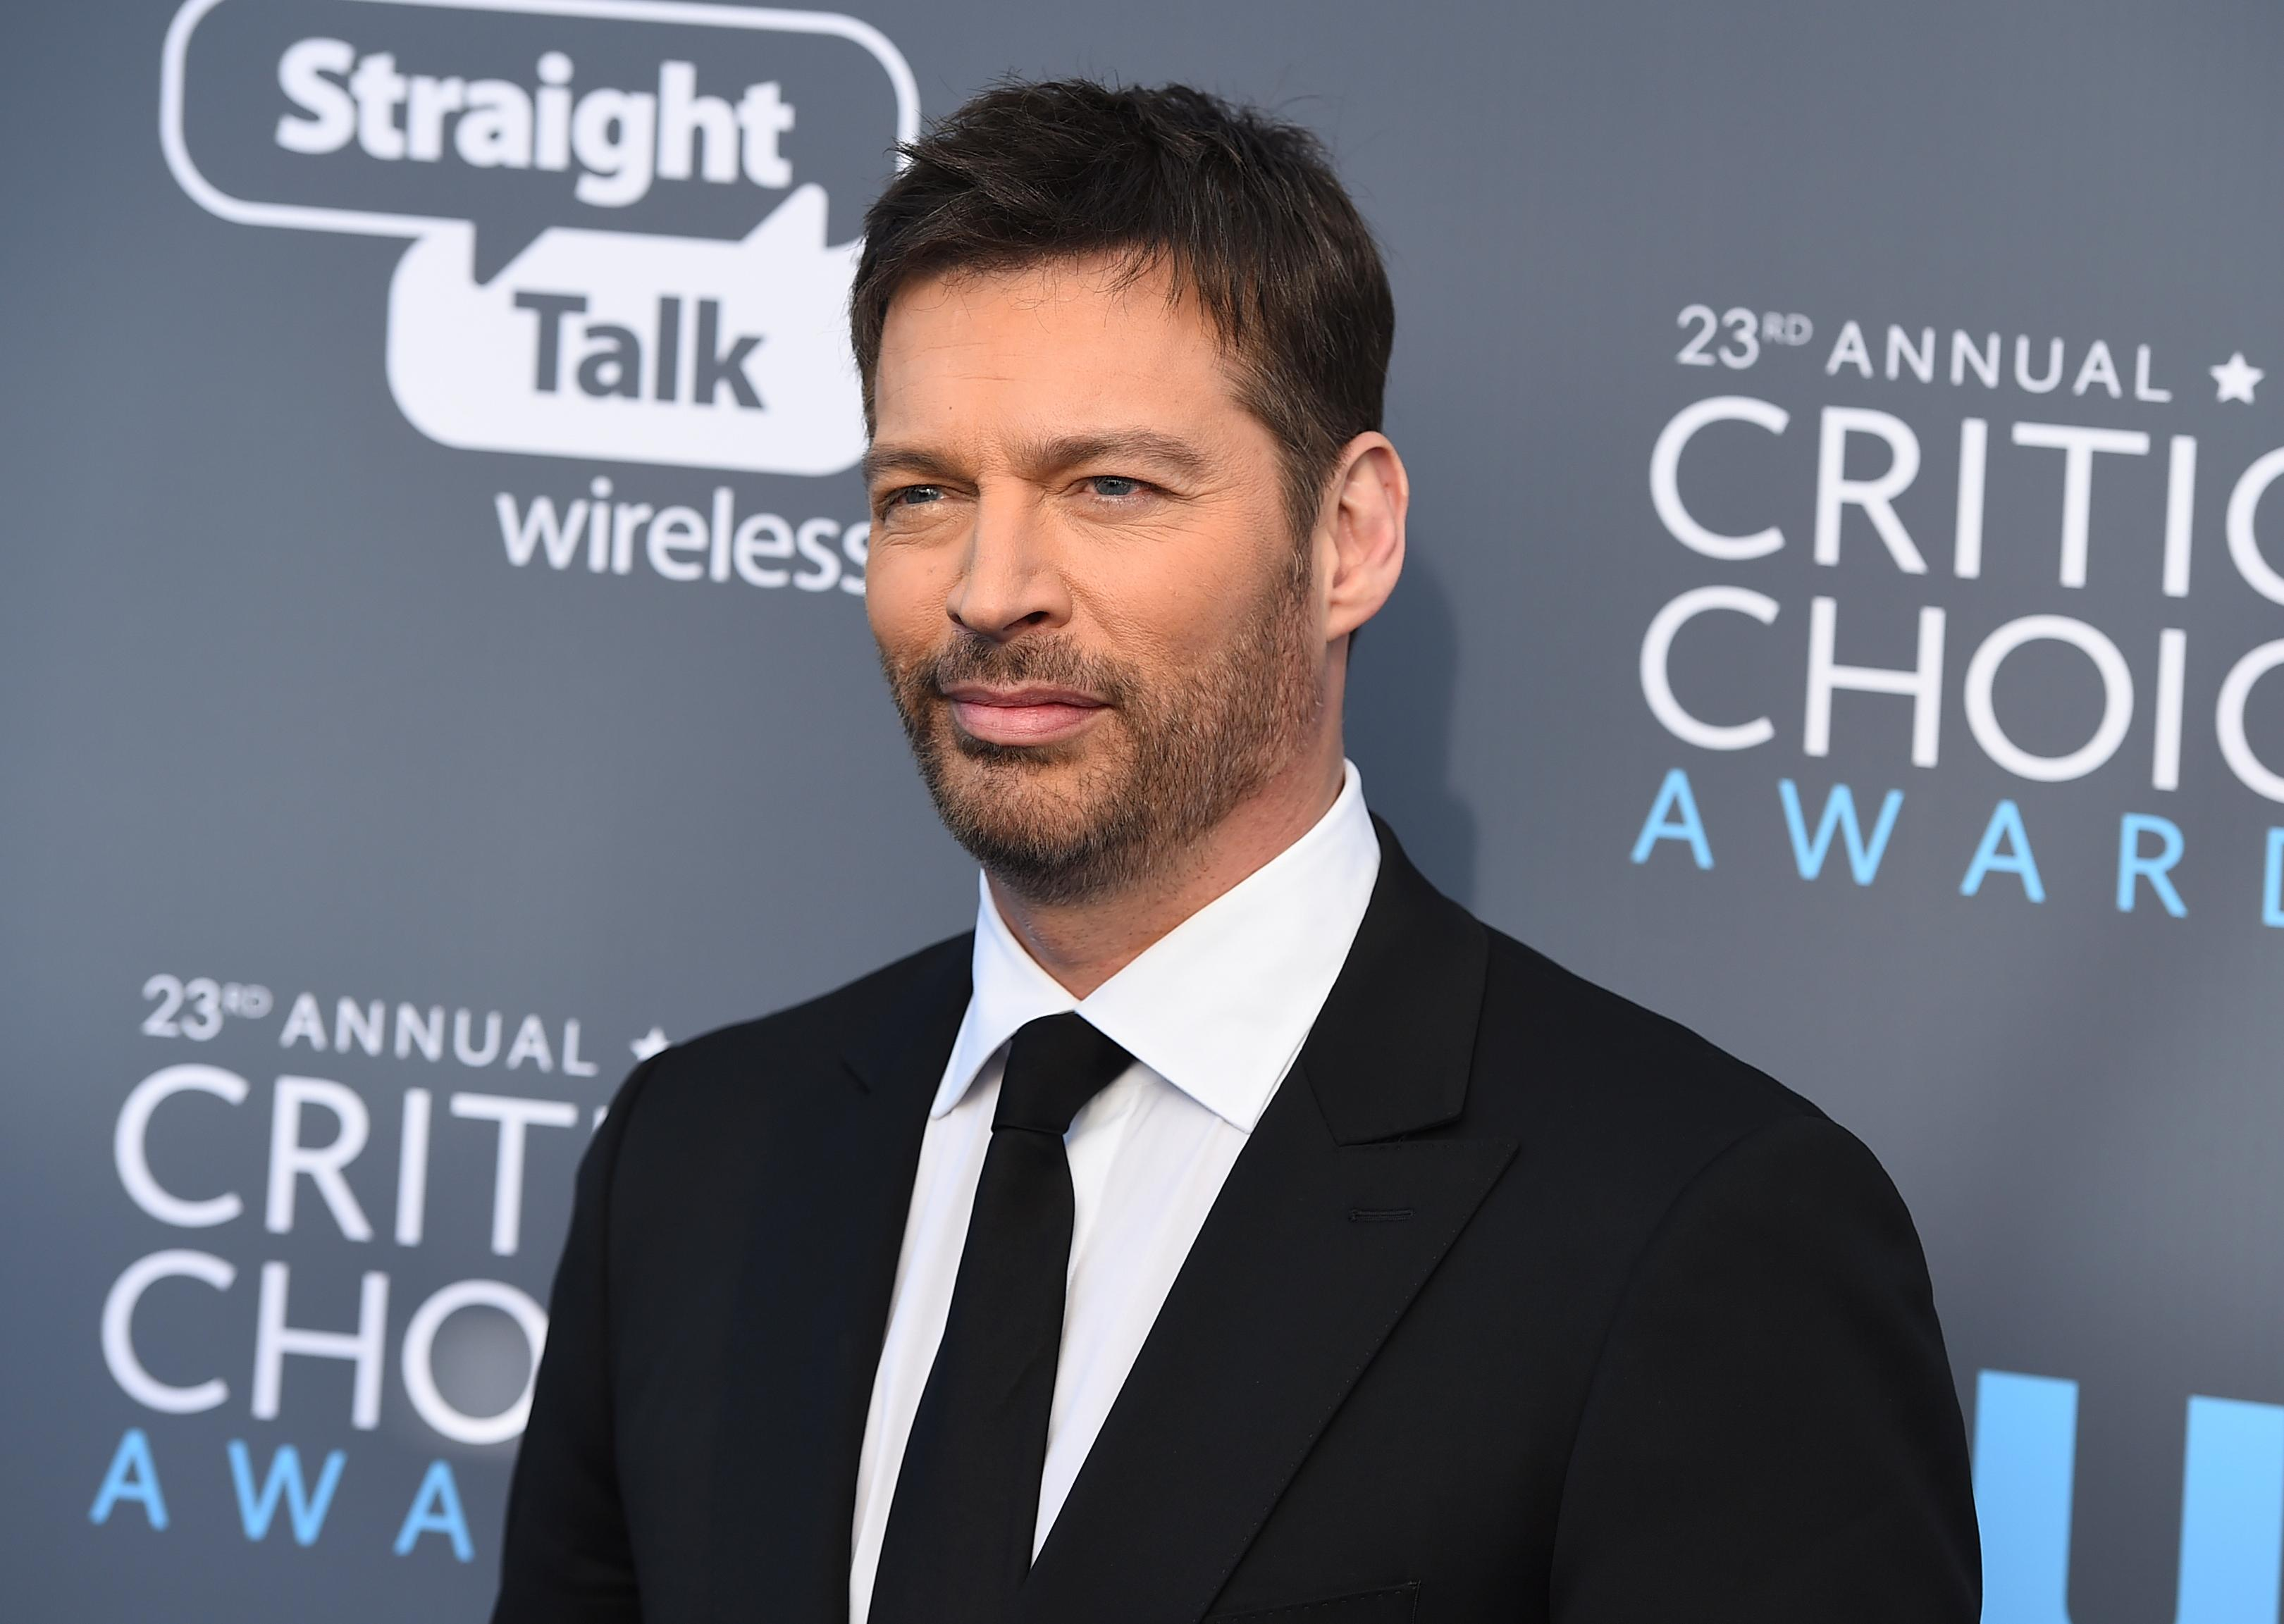 Harry Connick Jr. arrives at the 23rd annual Critics' Choice Awards at the Barker Hangar on Thursday, Jan. 11, 2018, in Santa Monica, Calif. (Photo by Jordan Strauss/Invision/AP)